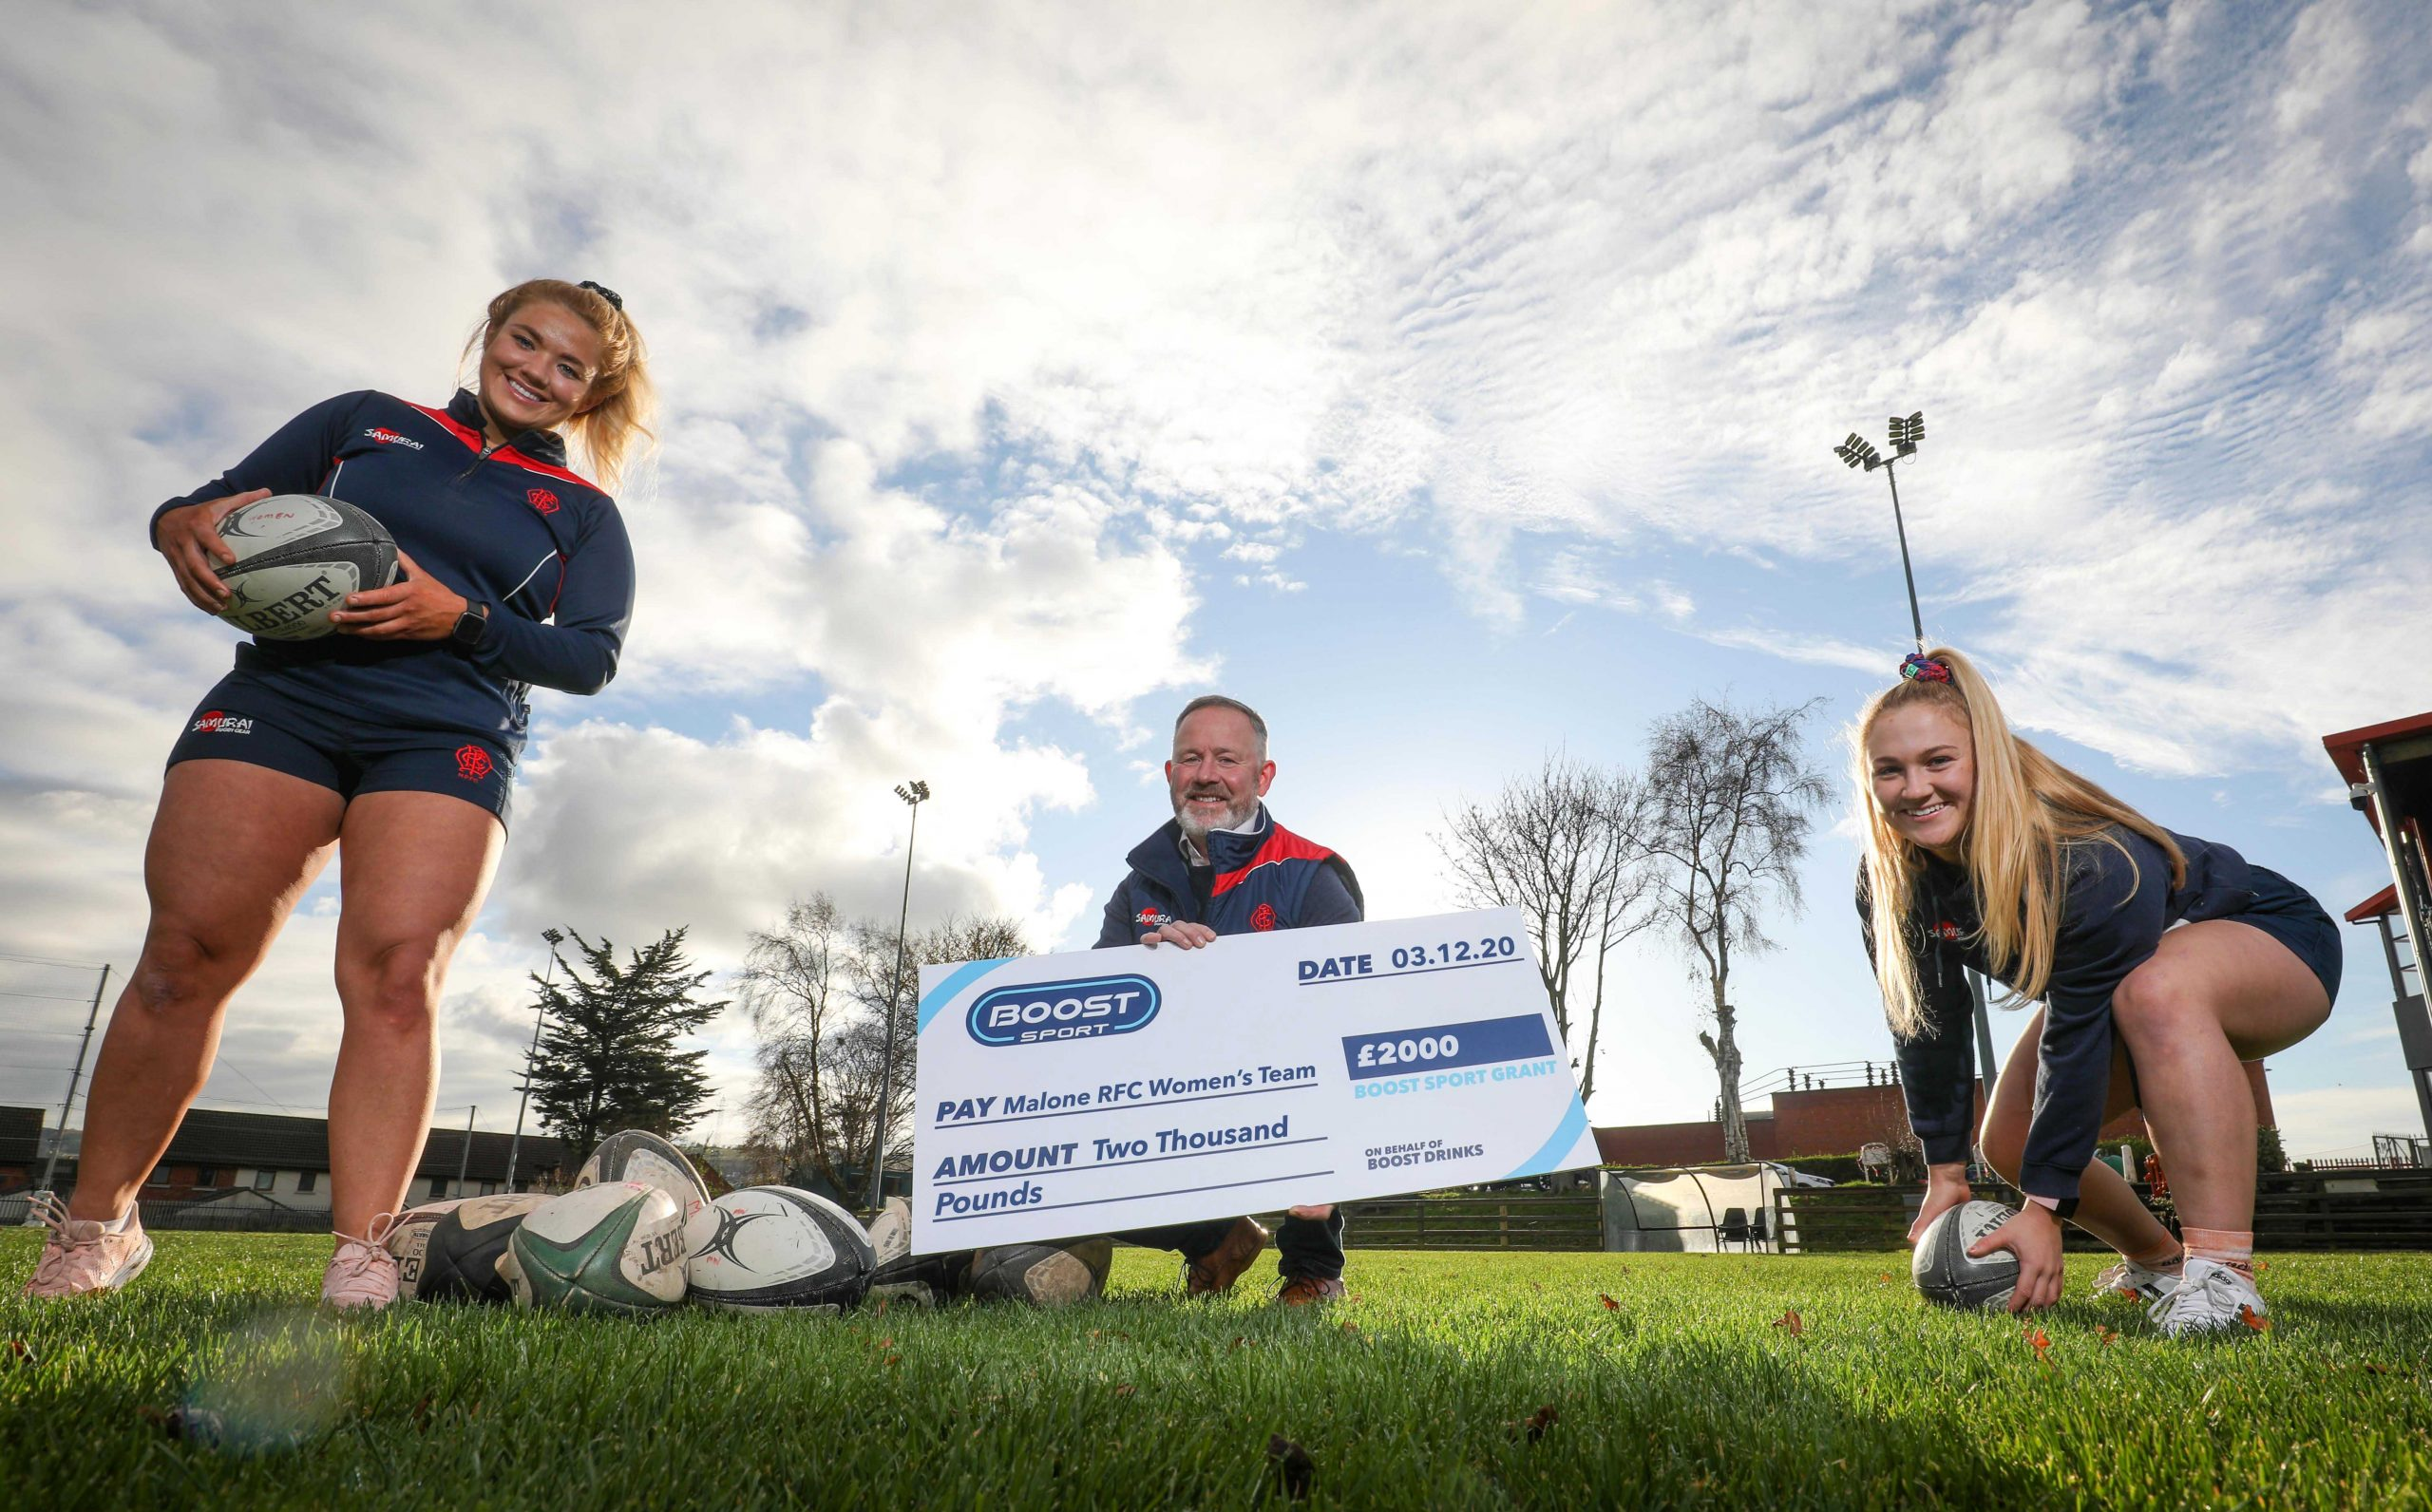 Seven local sports clubs receive a share of £5k thanks to Boost Sport